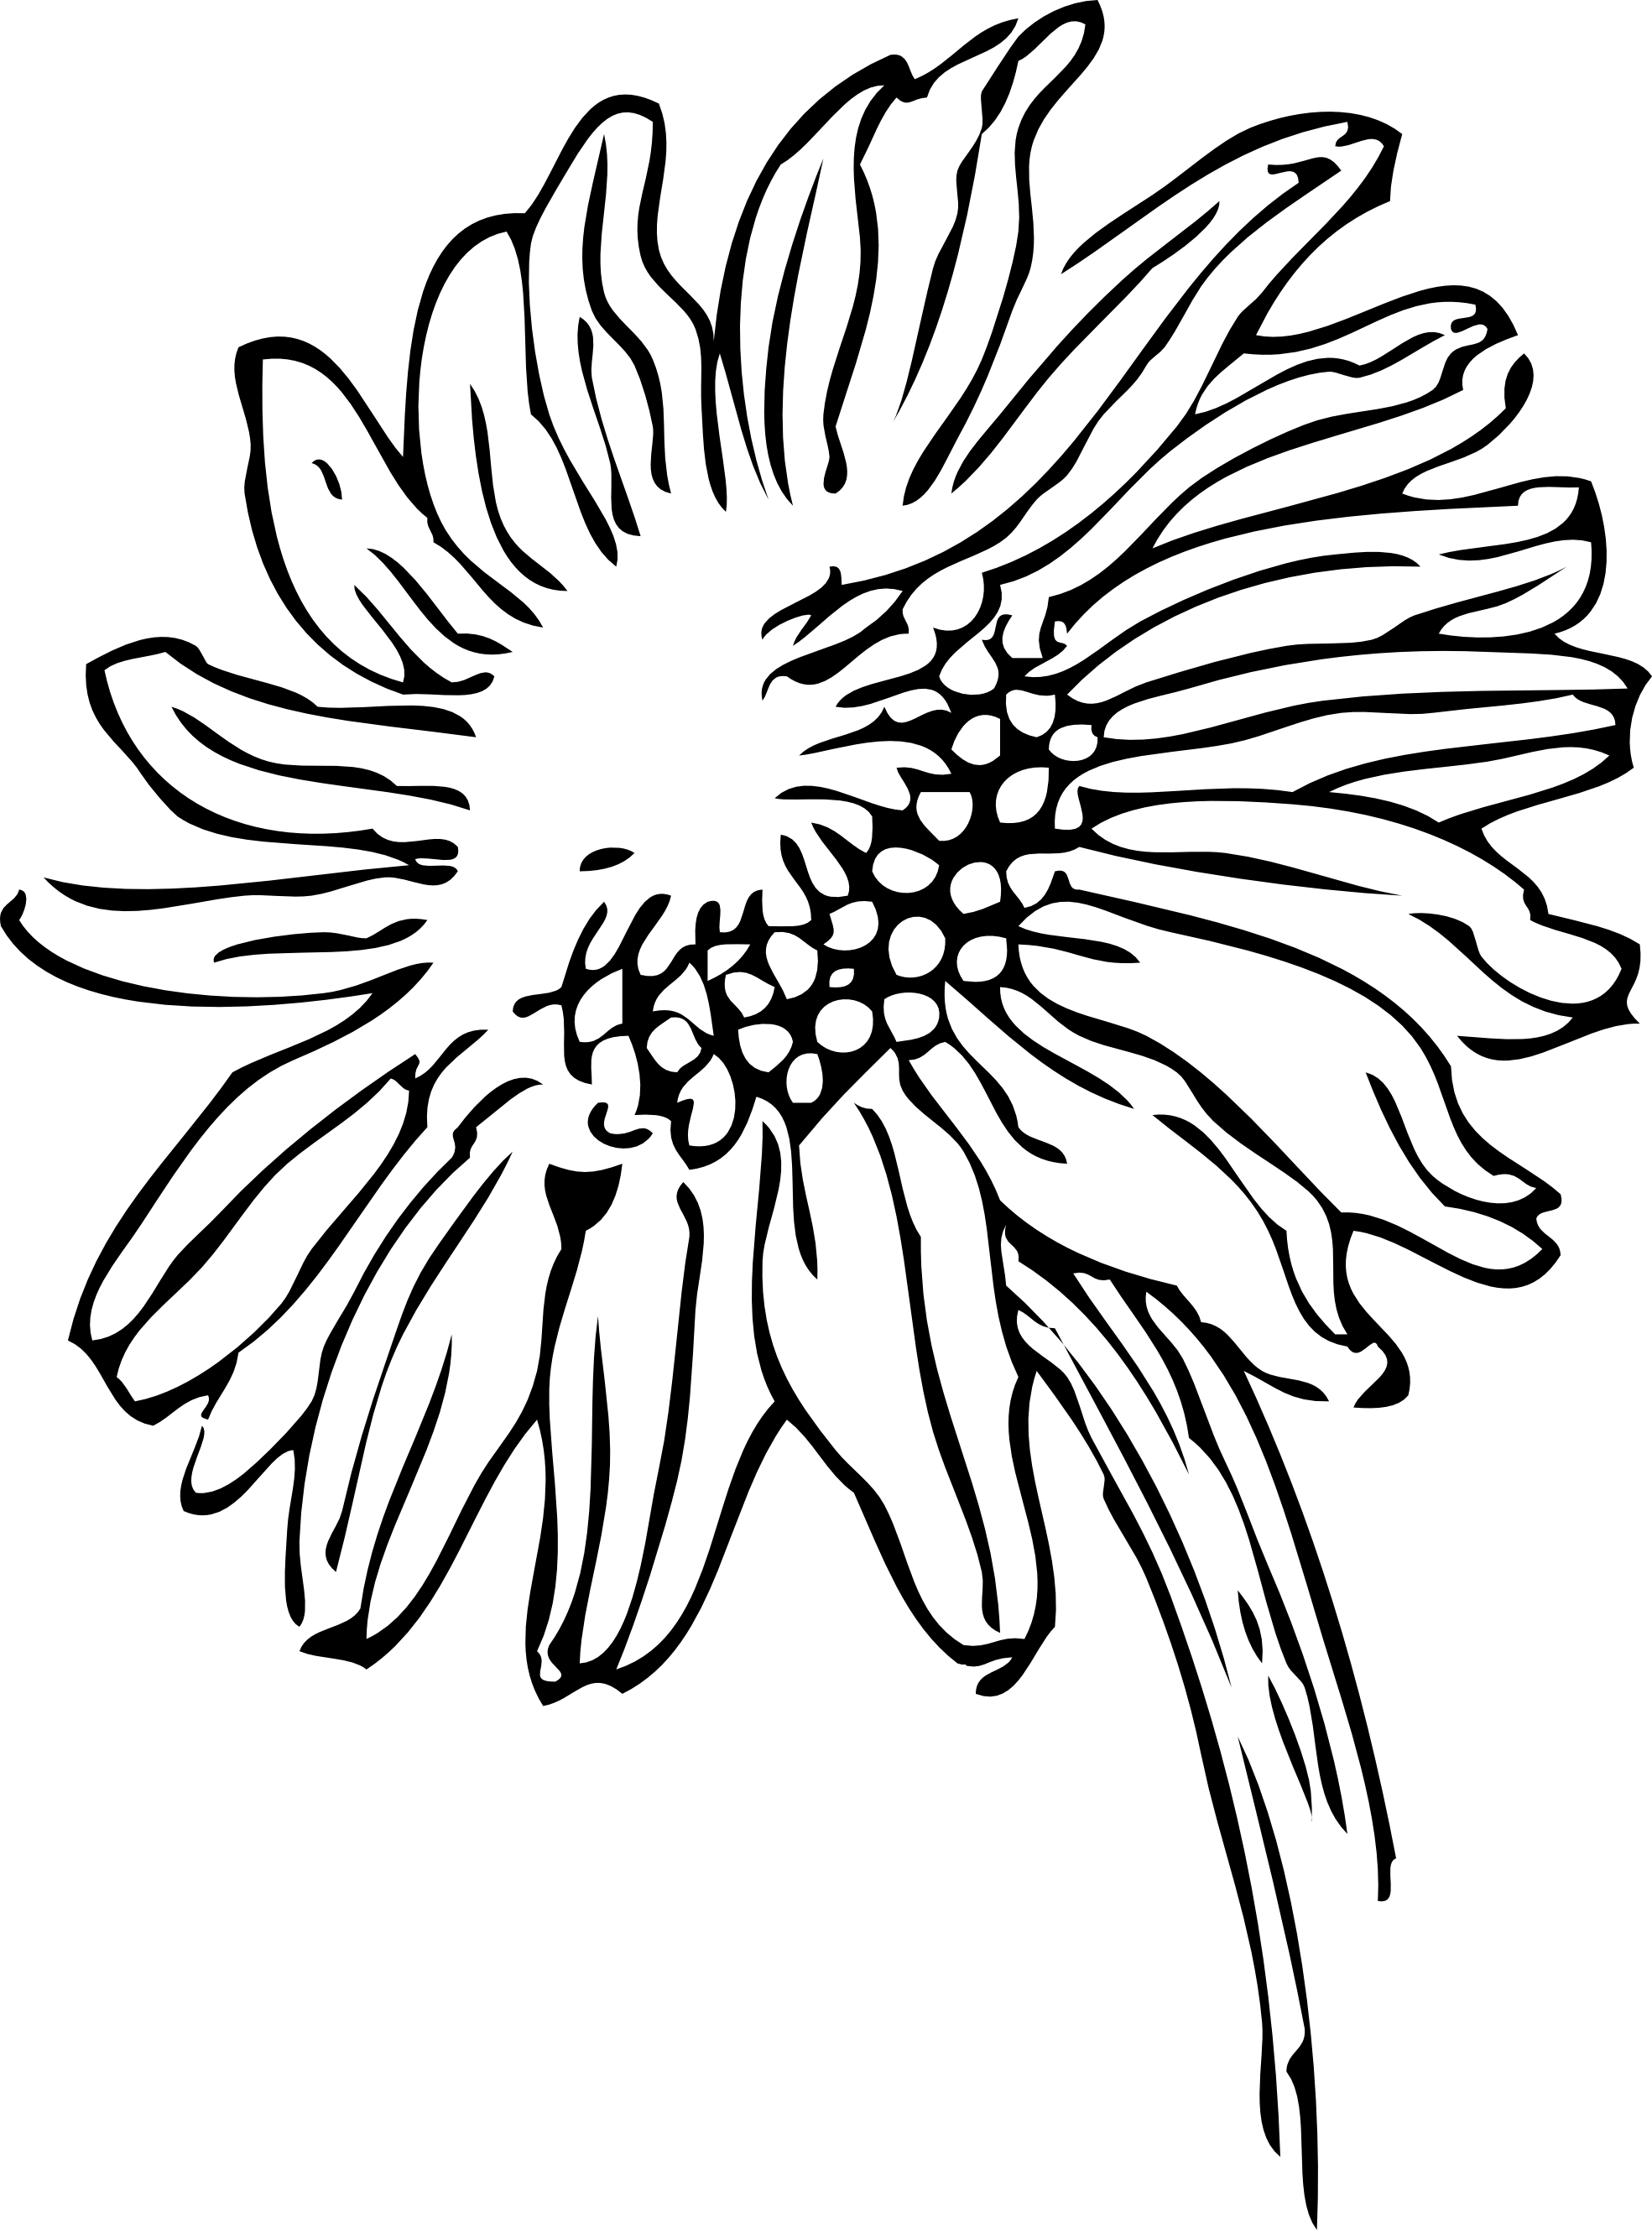 Drawing Lines Using Svg : Sunflower drawing black and white clipart panda free